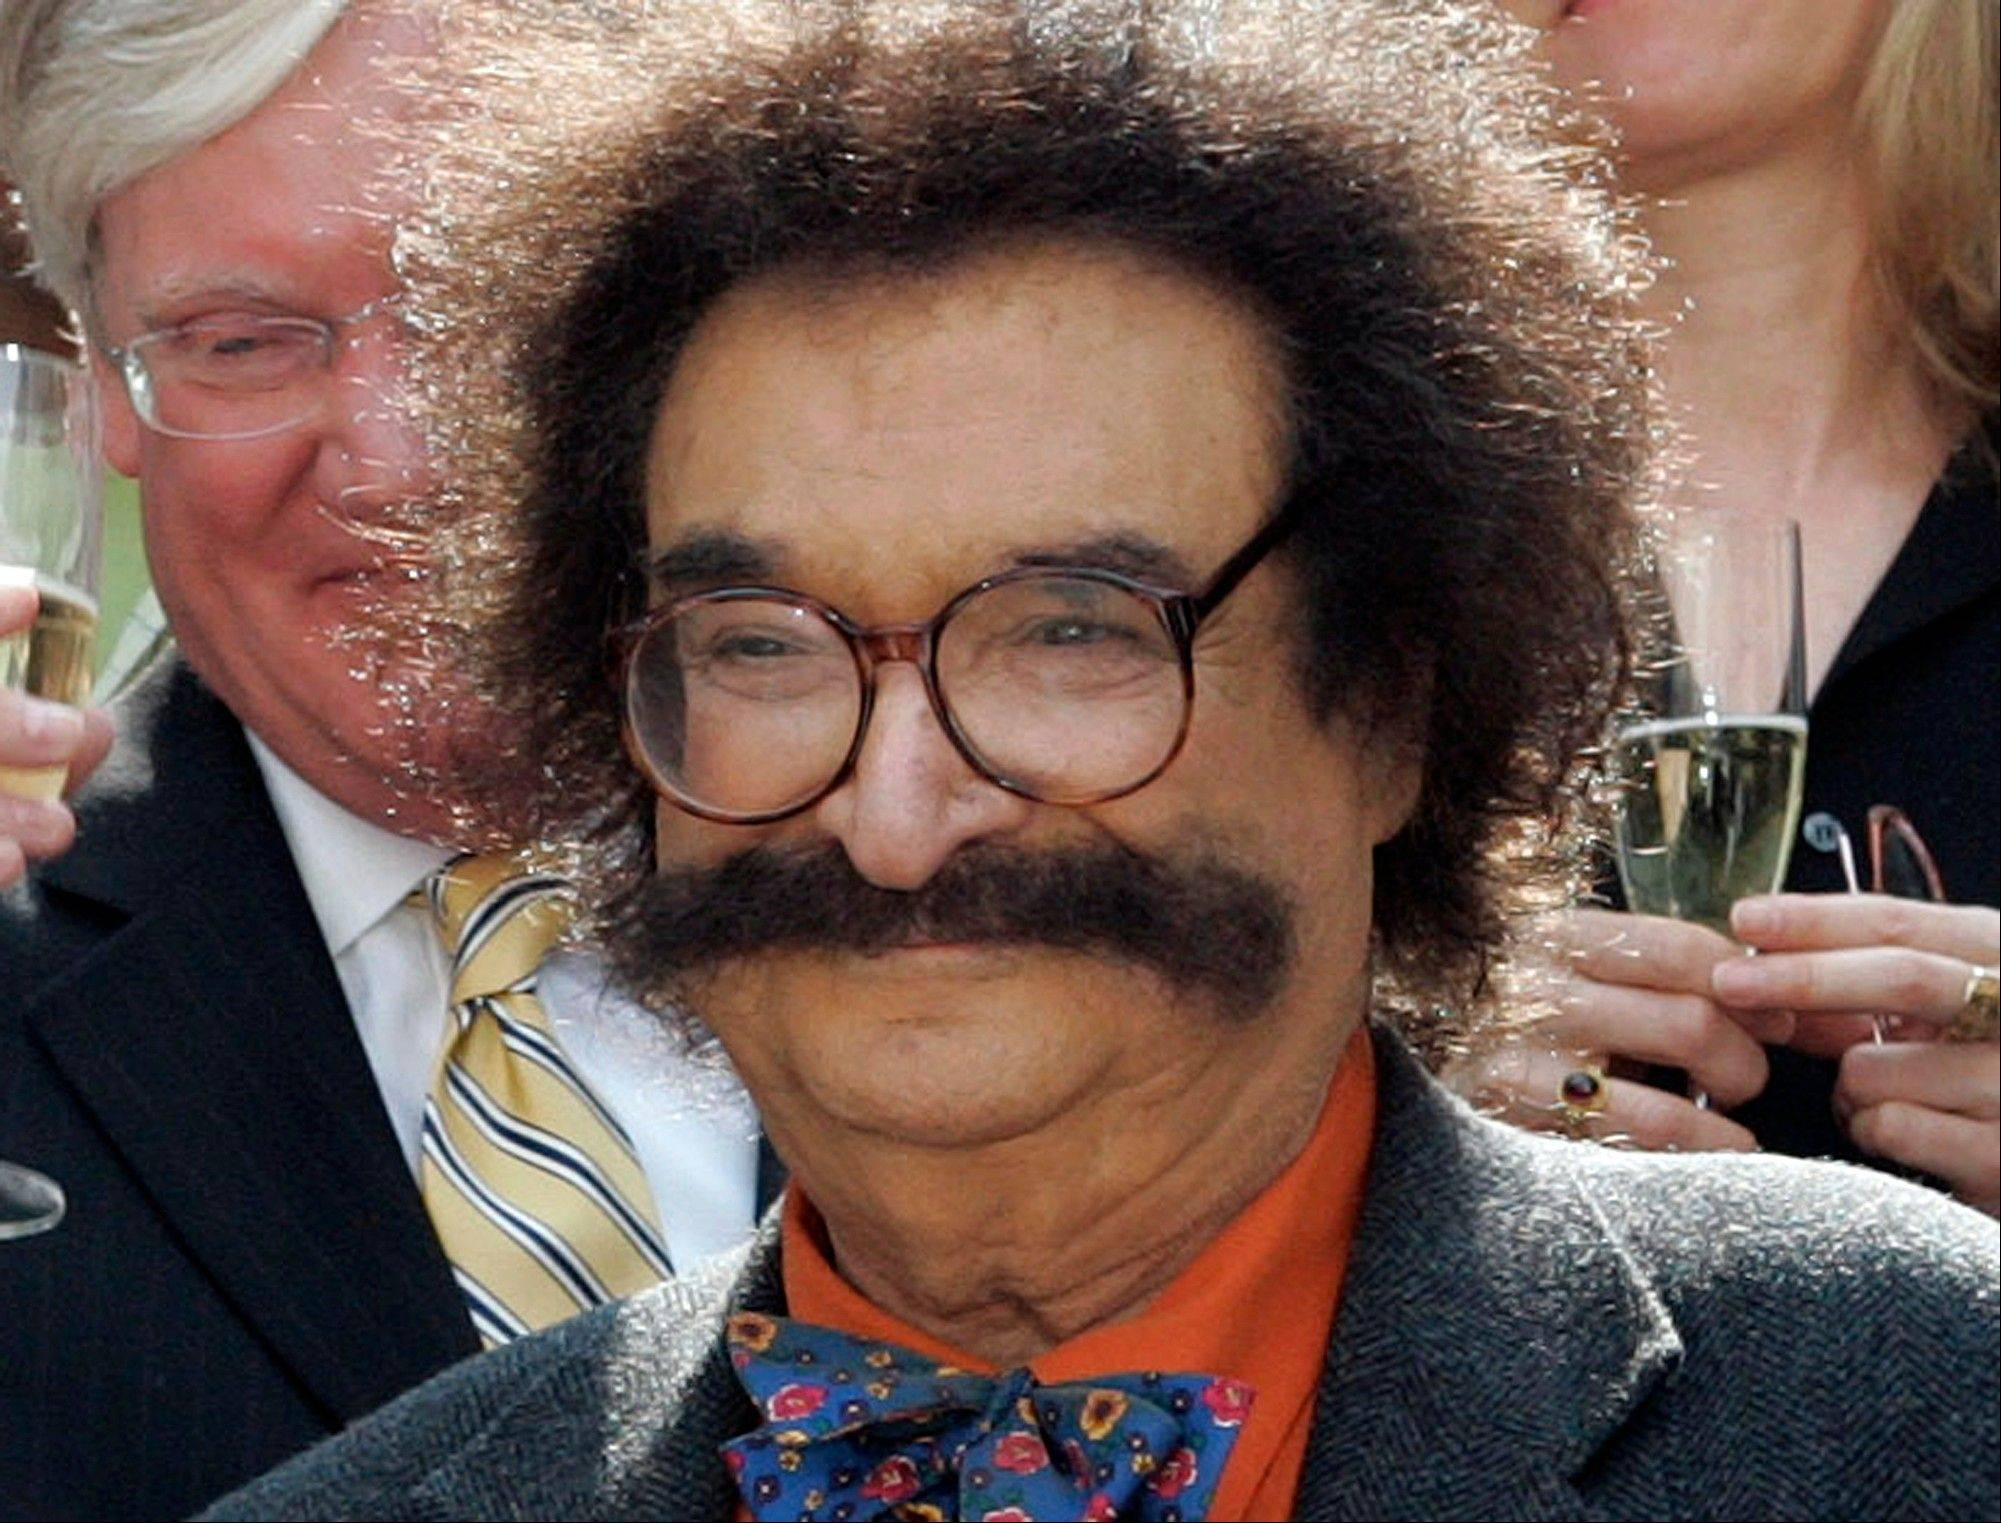 Film critic Gene Shalit, 86, faces a charge of driving to endanger after his vehicle struck a utility pole and came to rest against a home in Lenox, Mass., Wednesday, according to police.